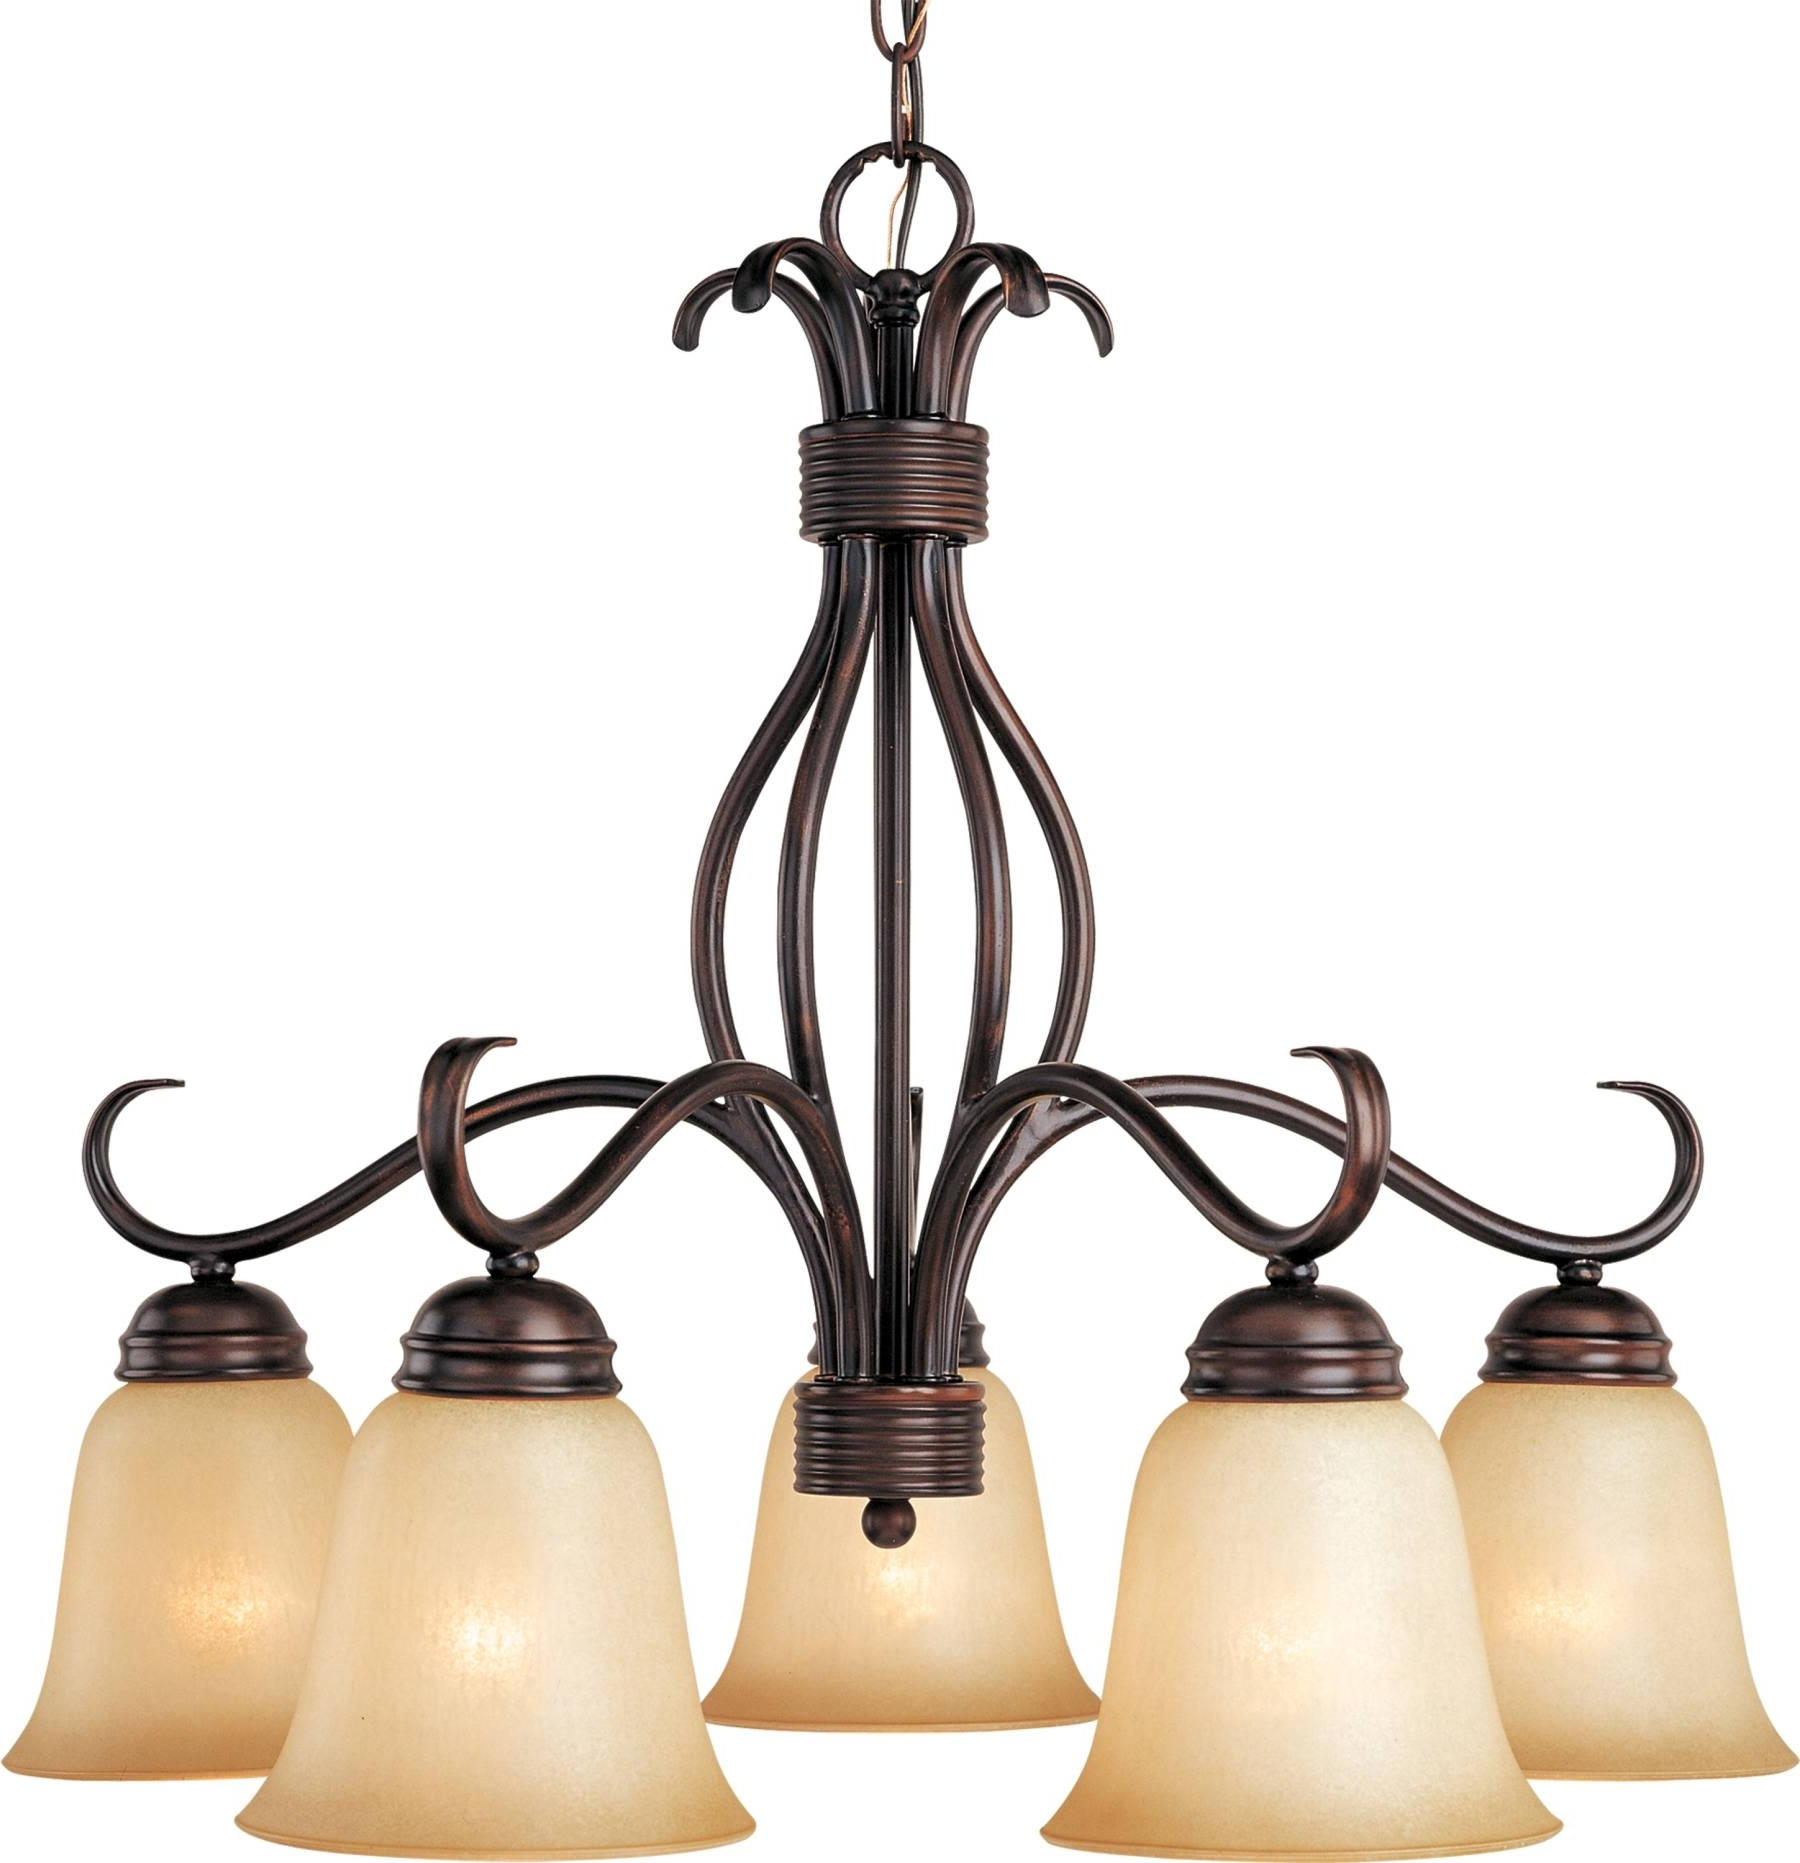 Widely Used Old And Vintage Hanging Cast Iron Chandeliers With White Five Throughout Black Iron Chandeliers (View 20 of 20)